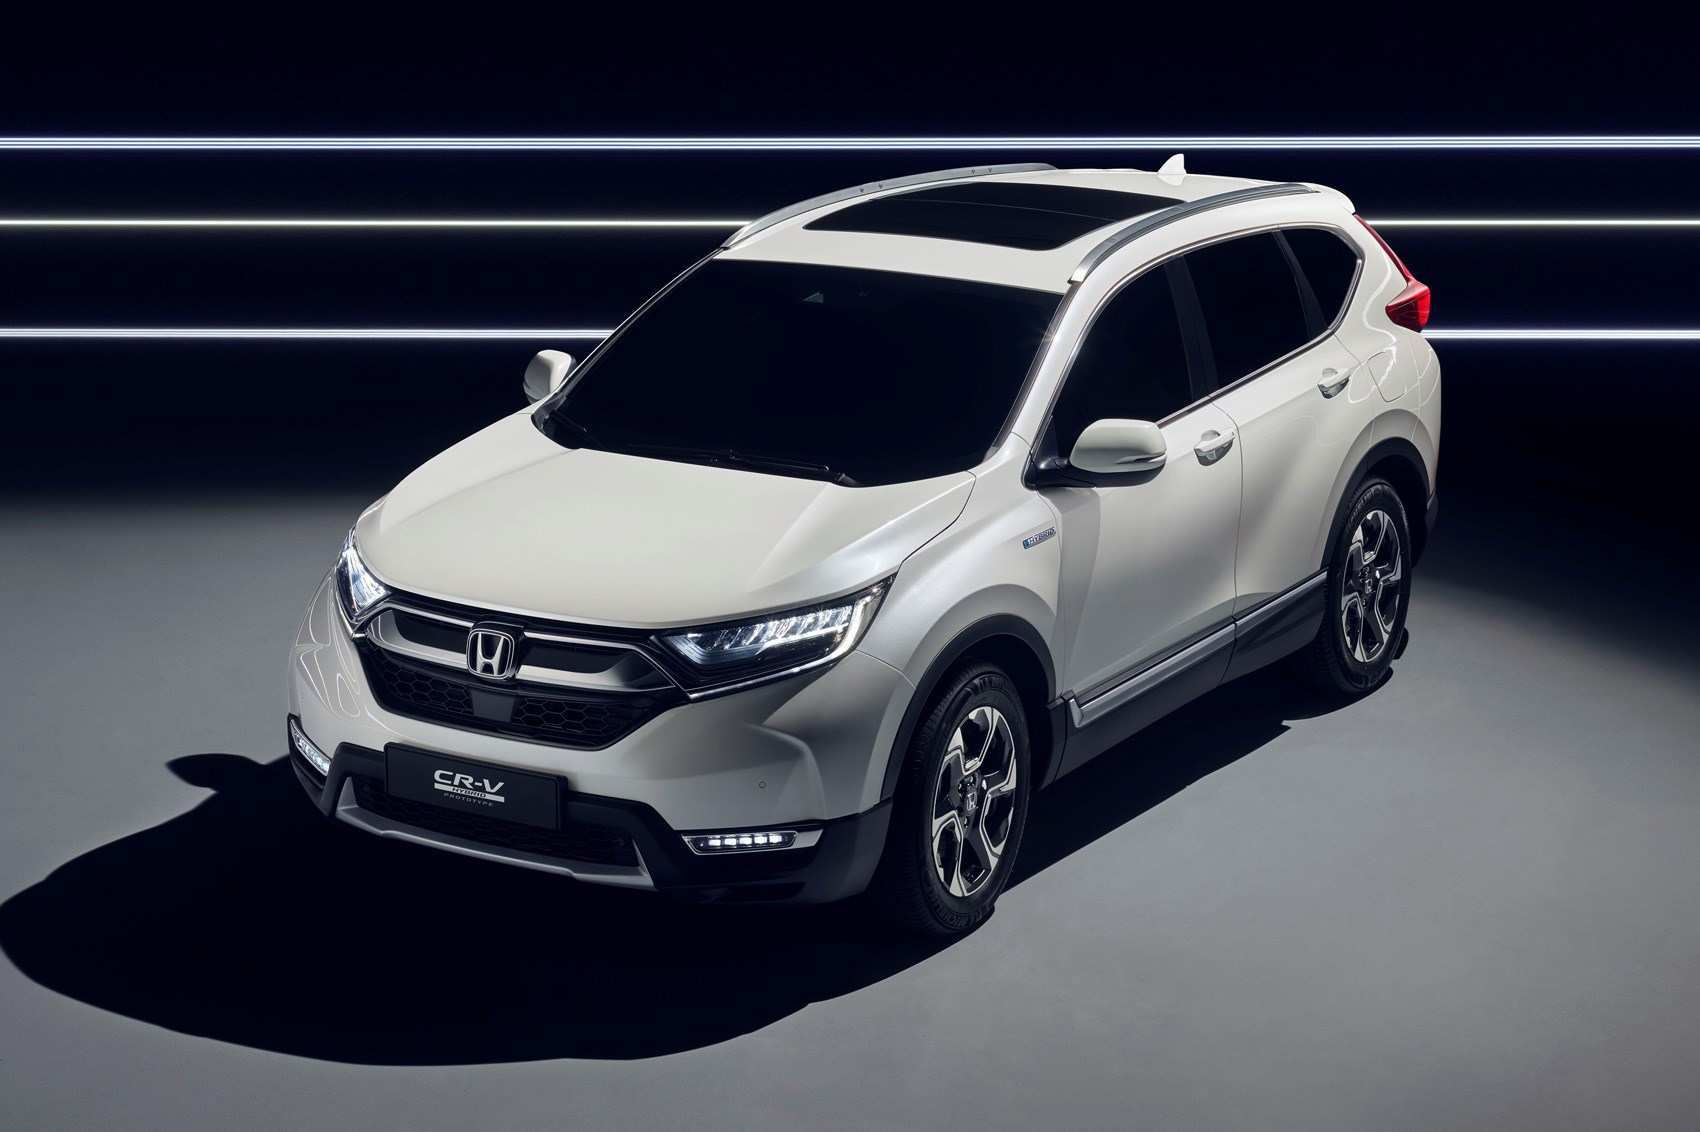 67 The Best 2020 Honda Crv Release Date Price And Review